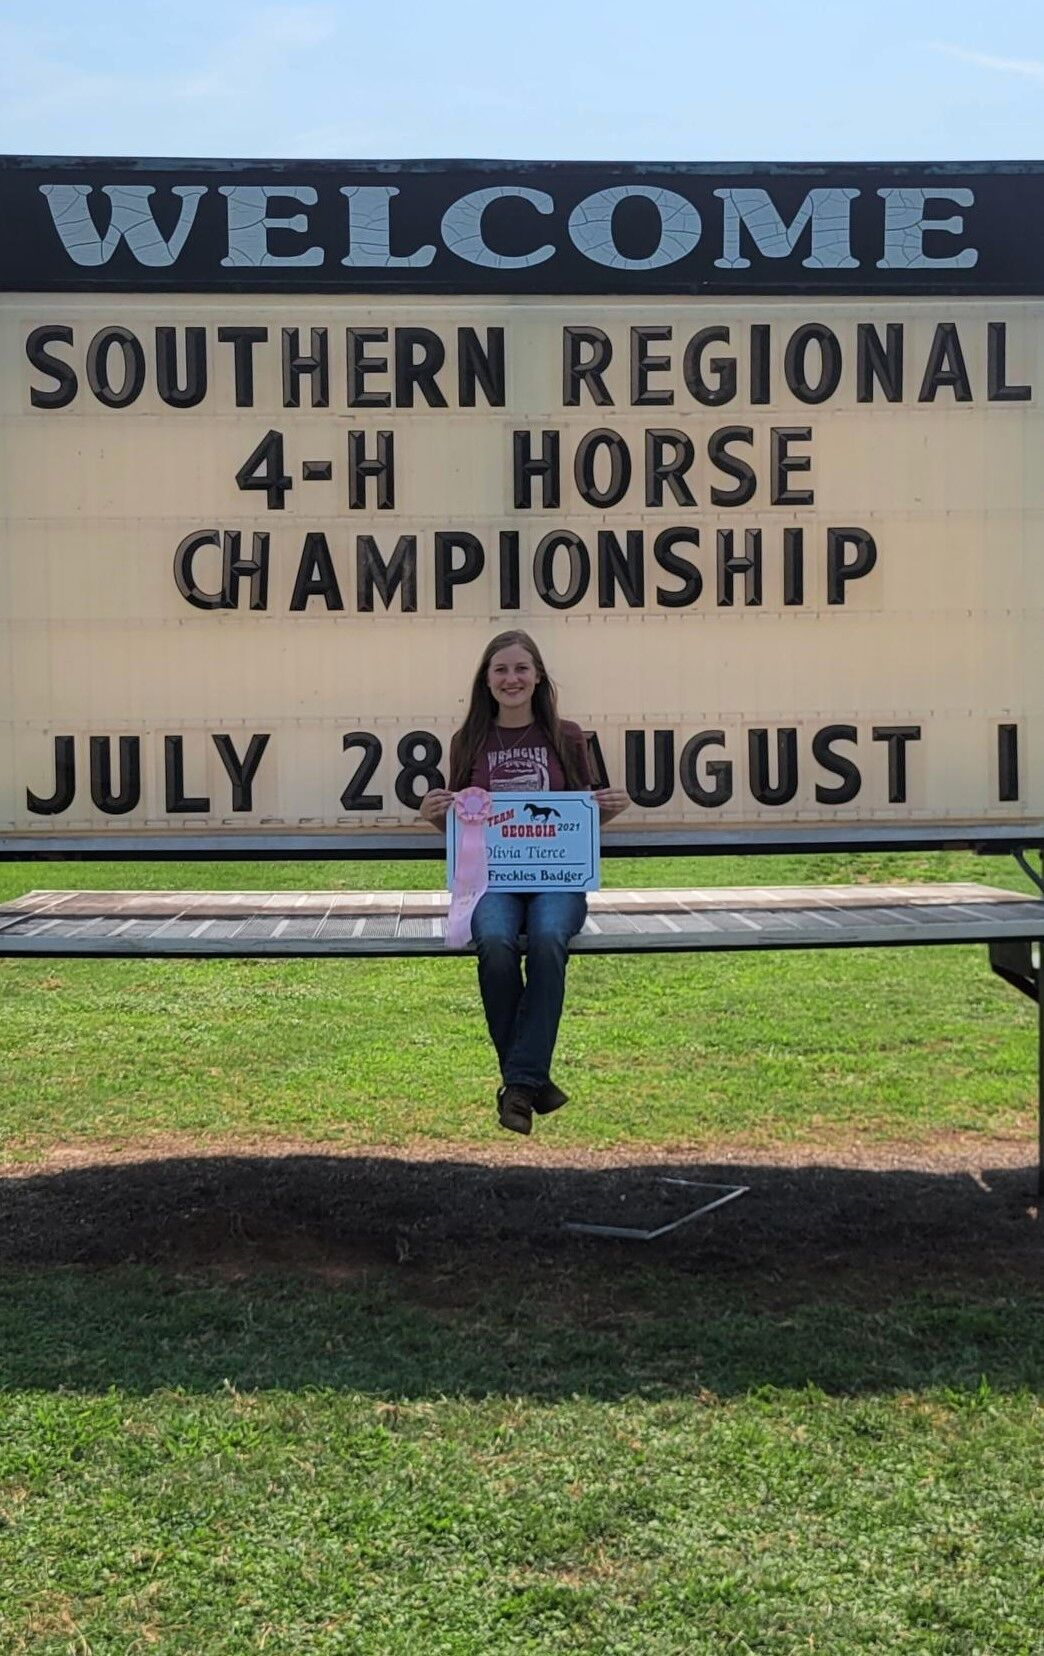 Locals place at Southern Regional 4-H Horse Championships